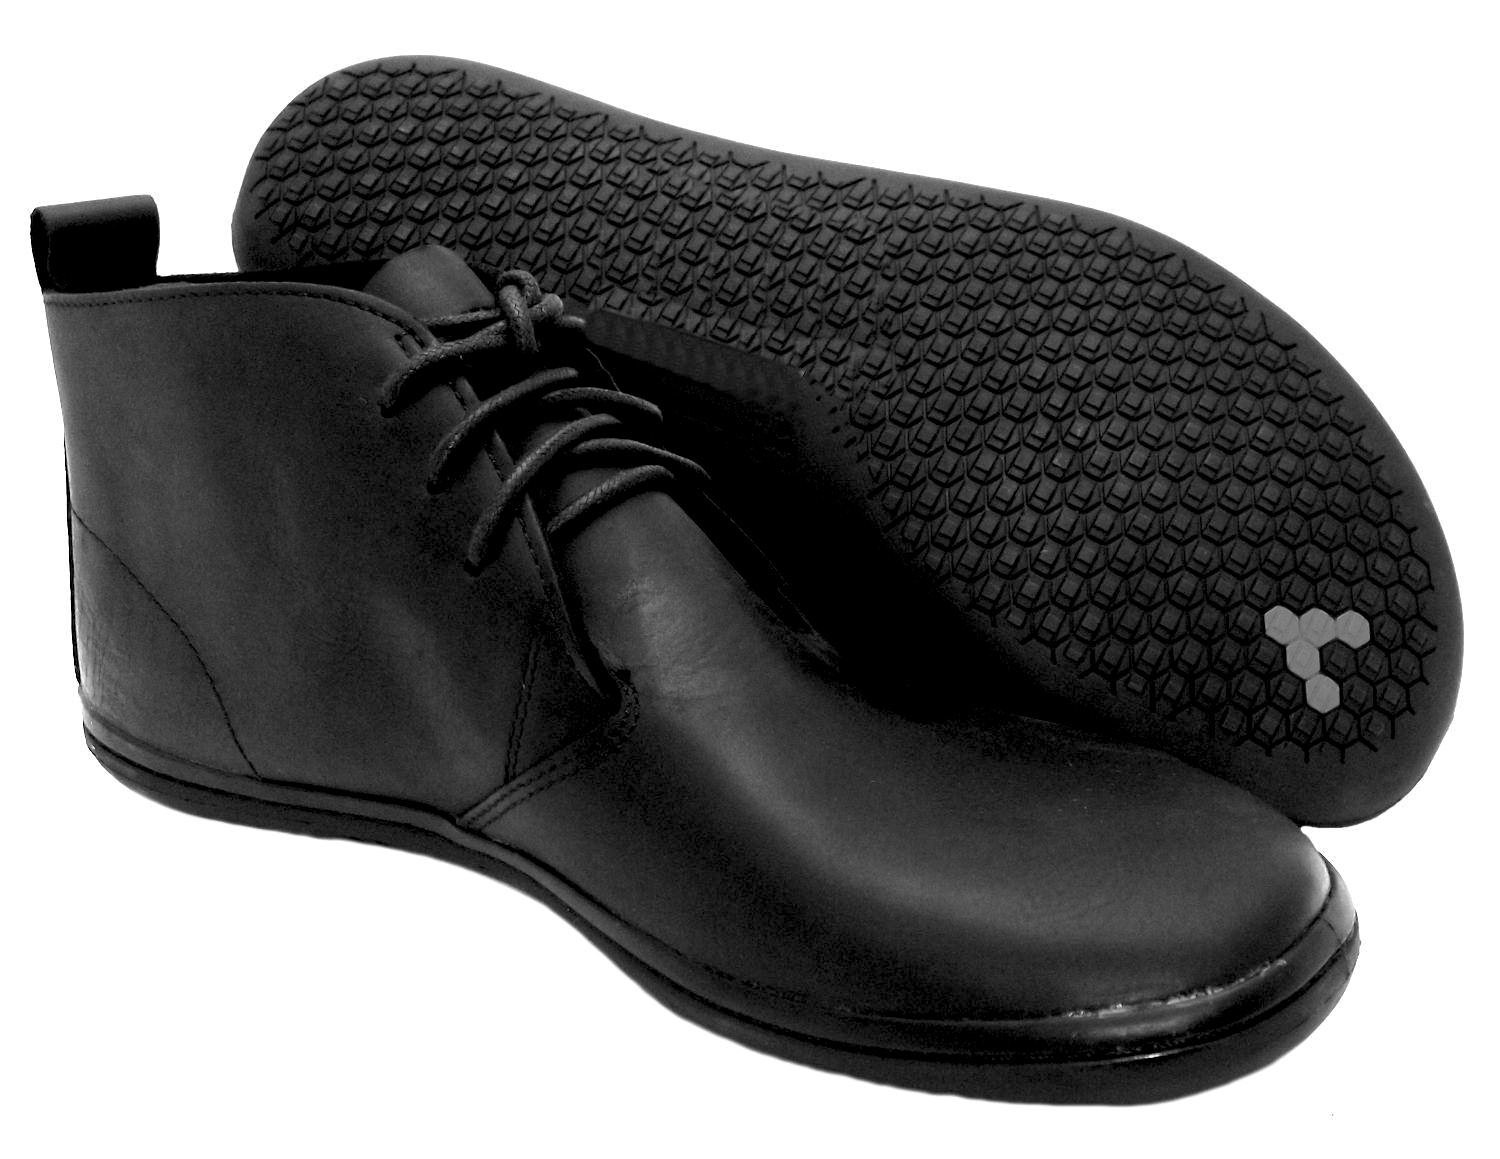 Barefoot Shoes For Work Peter J Thomson